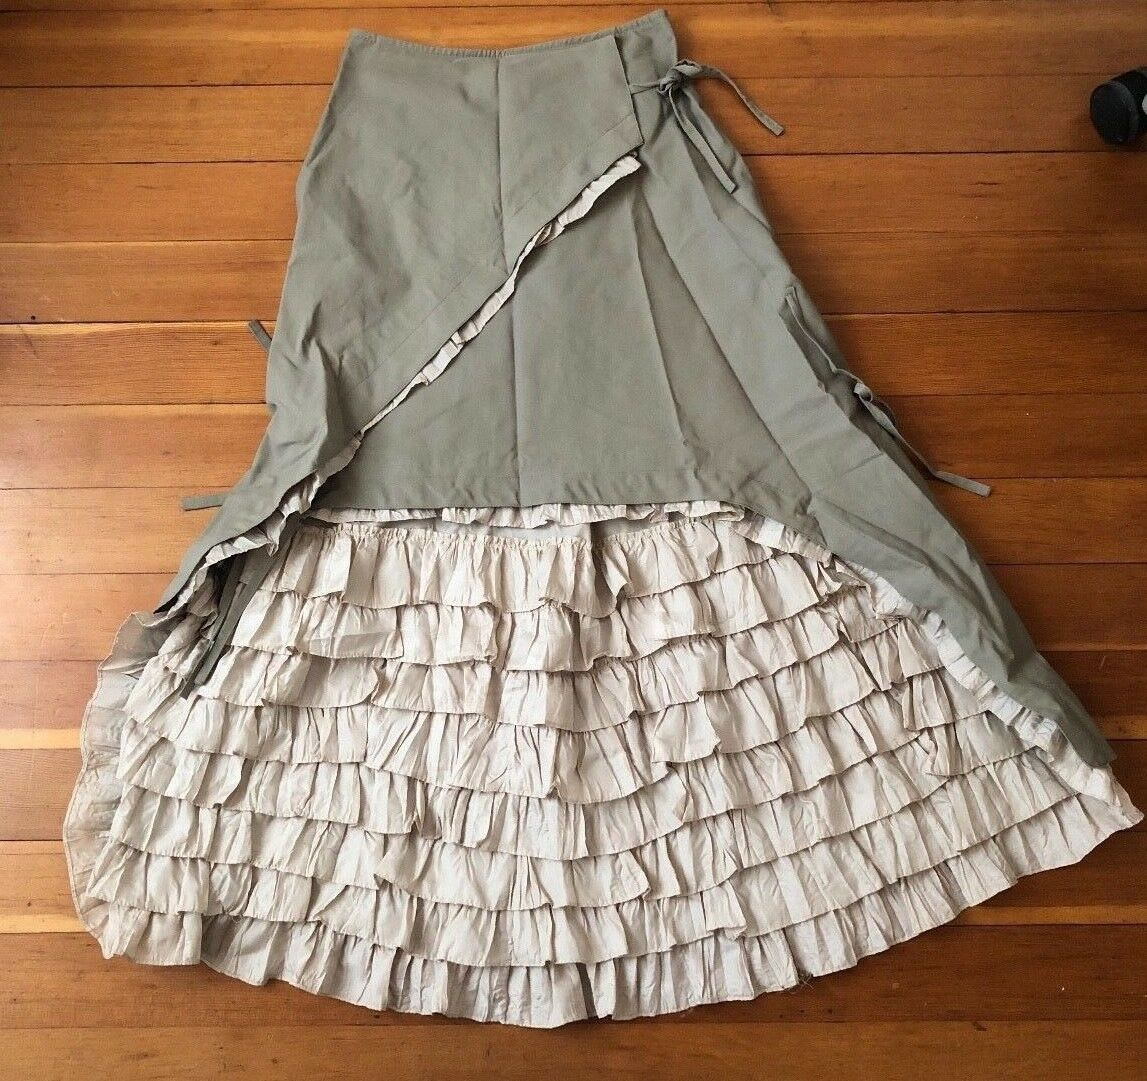 Anthropologie Empire Skirt Marie Antoinette Grey Parchment Ruffle FR Lou Dallas